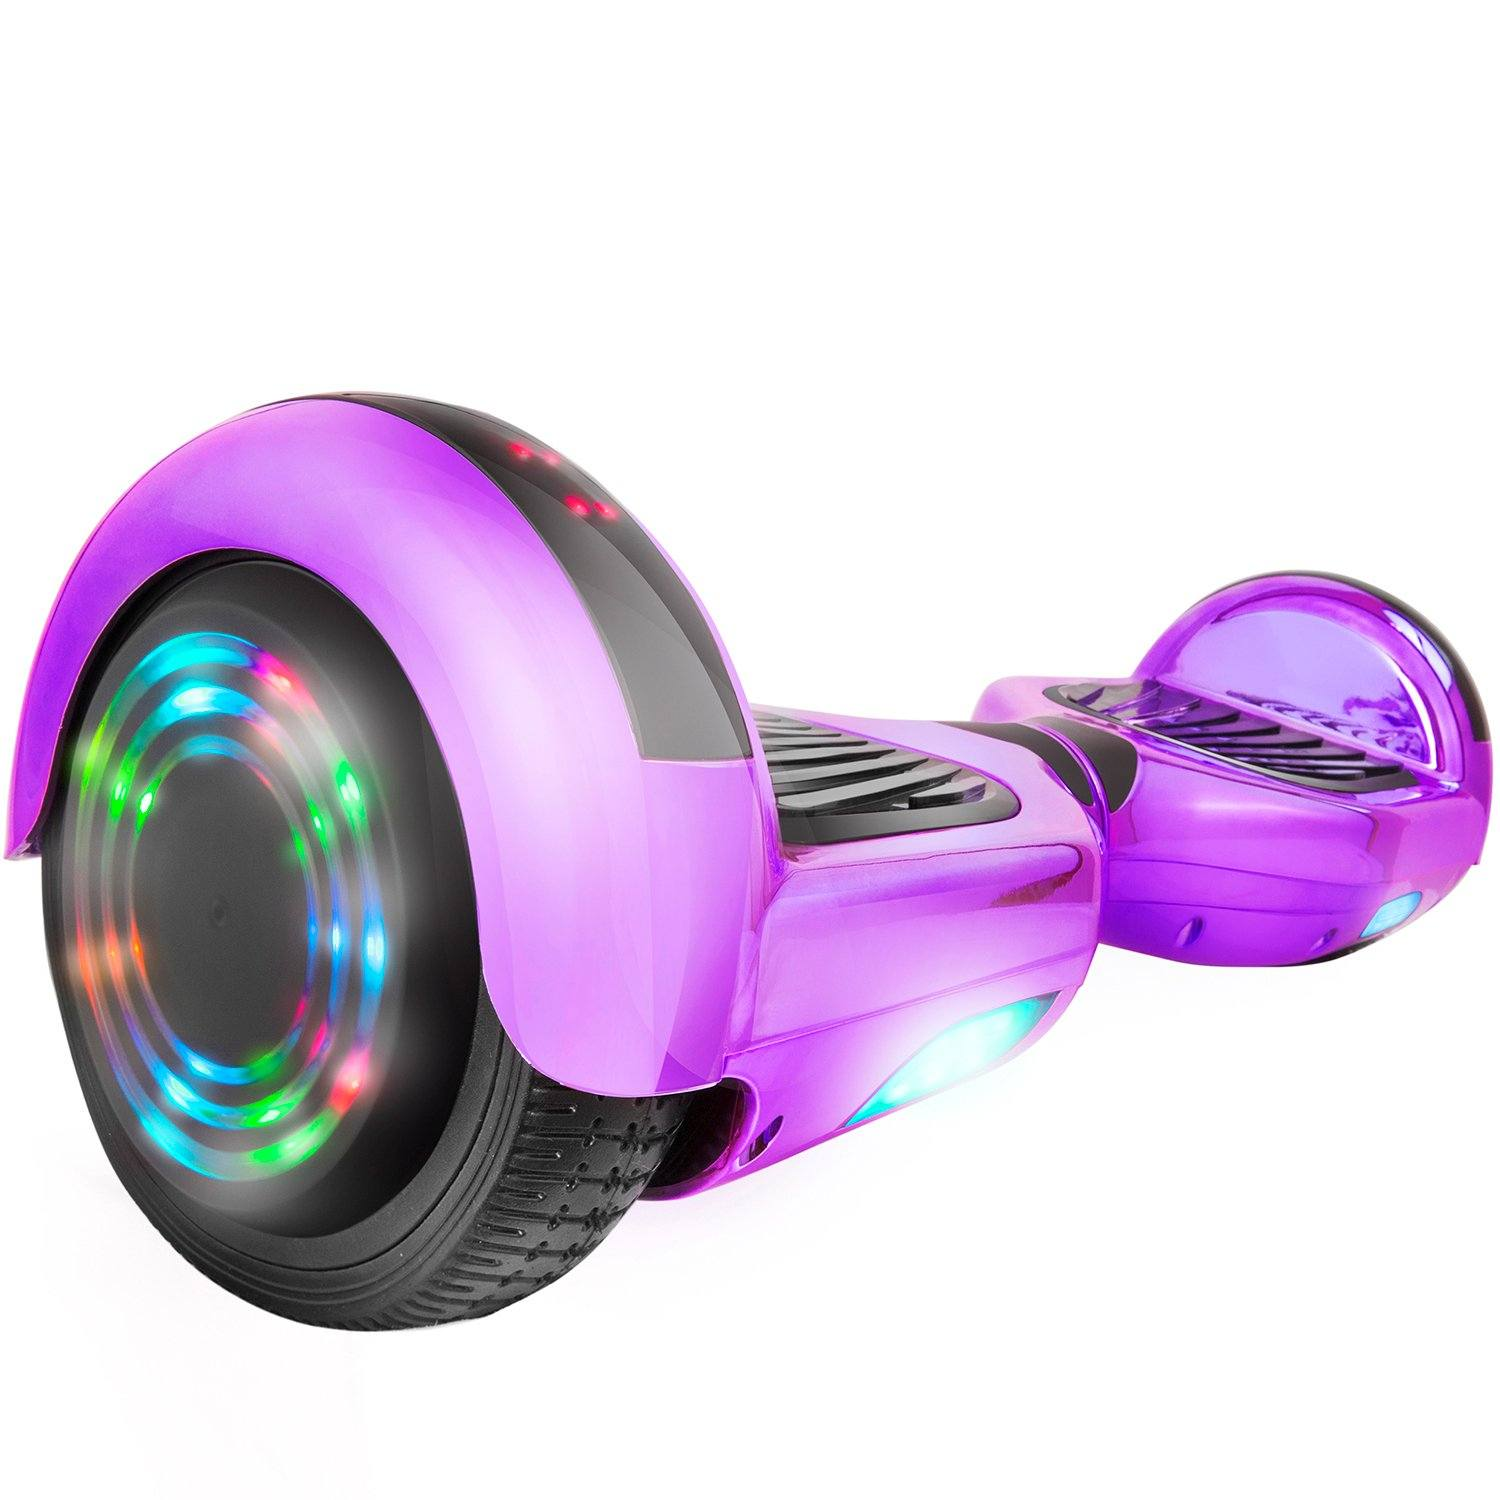 XPRIT C1 Plus Purple Safe Hoverboard UL2272 certified with Bluetooth Speaker Free Shipping. - HoverBoard4sale